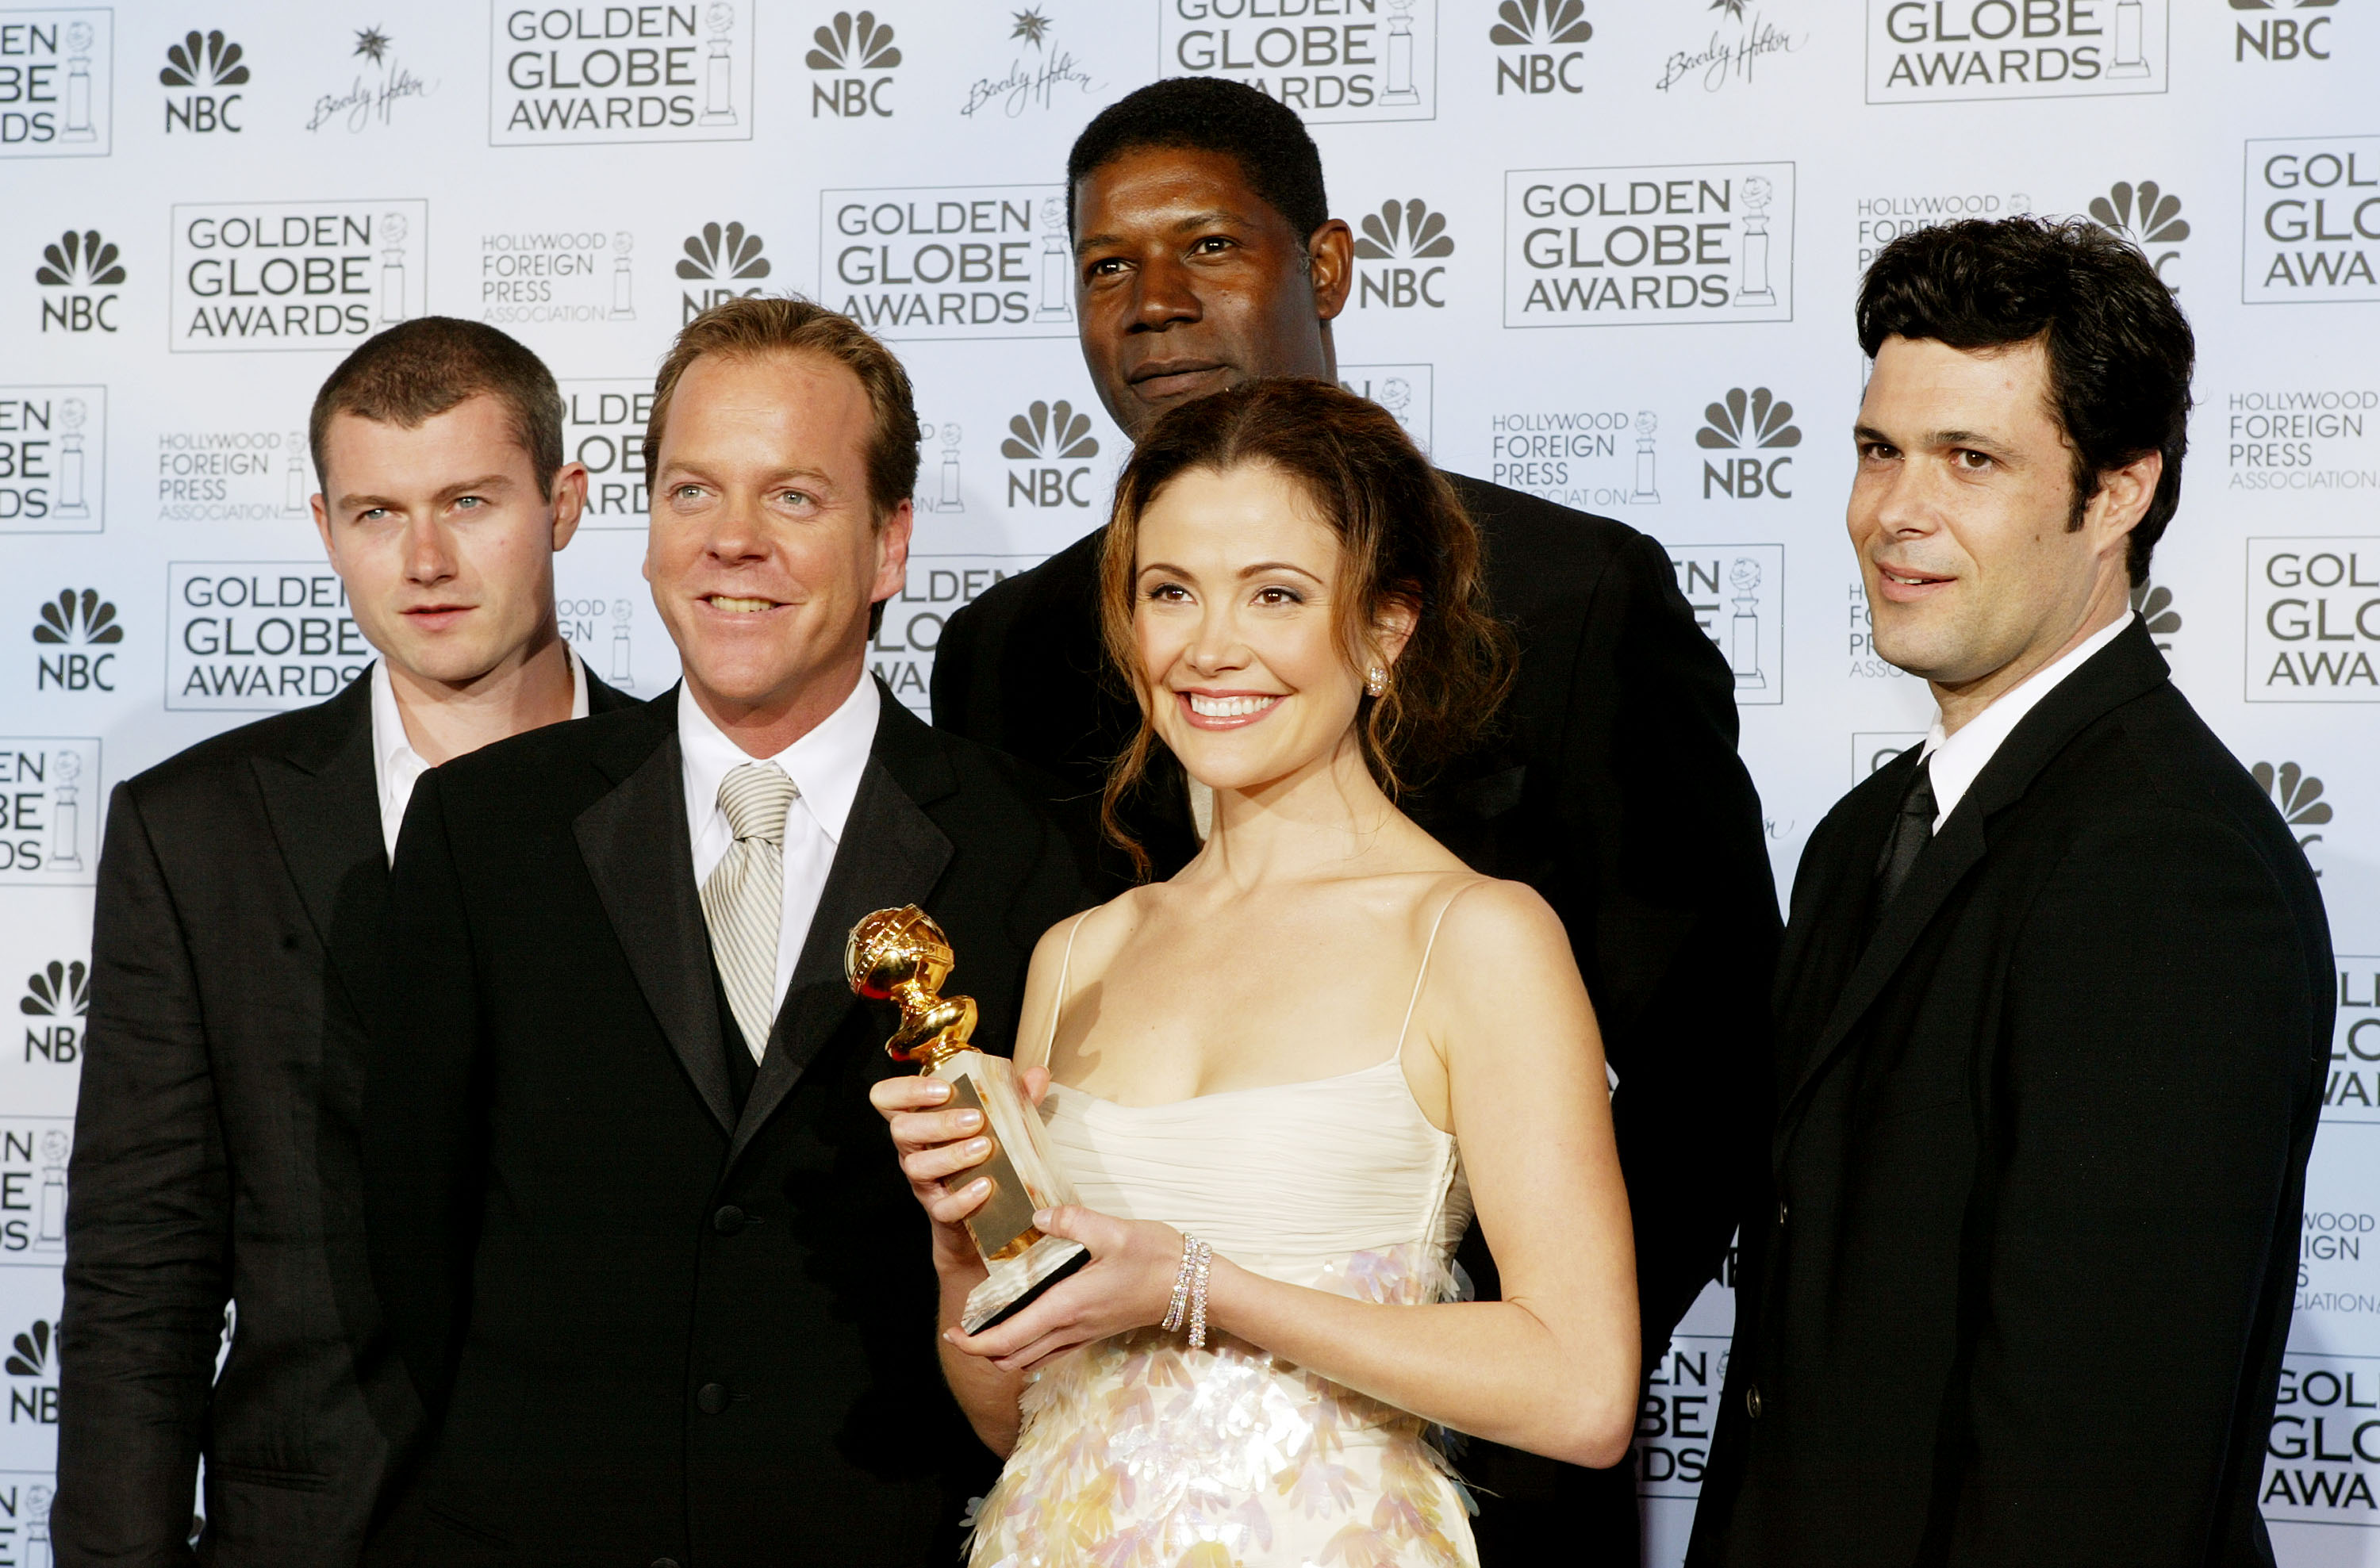 Keifer Sutherland golden globe photo